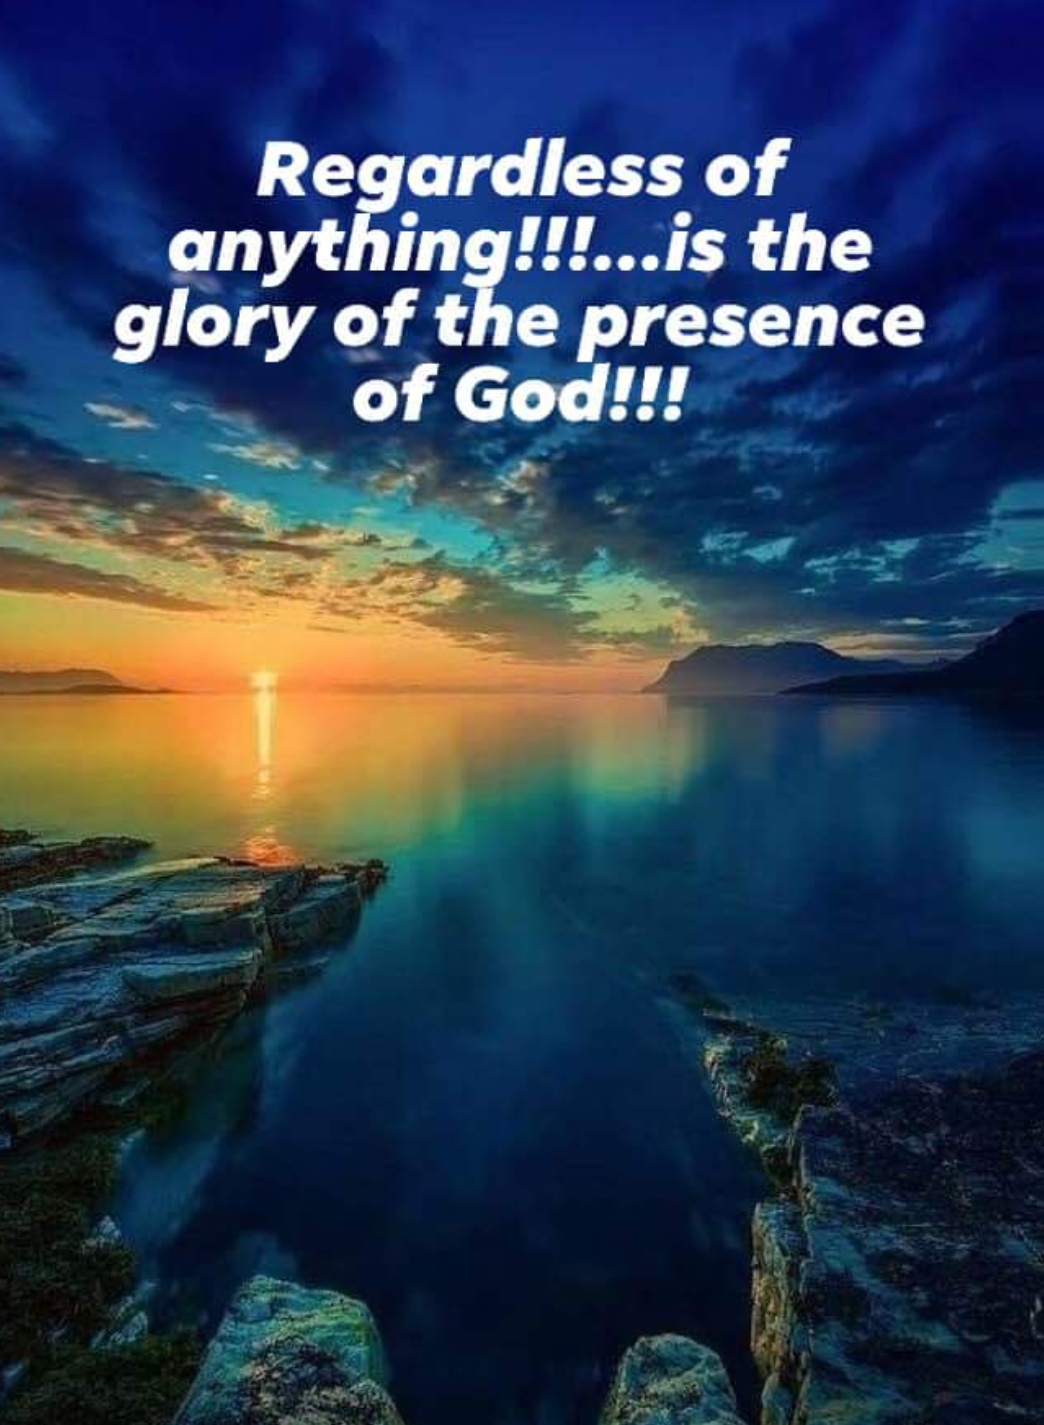 GOD'S GLORY, IN YOU!